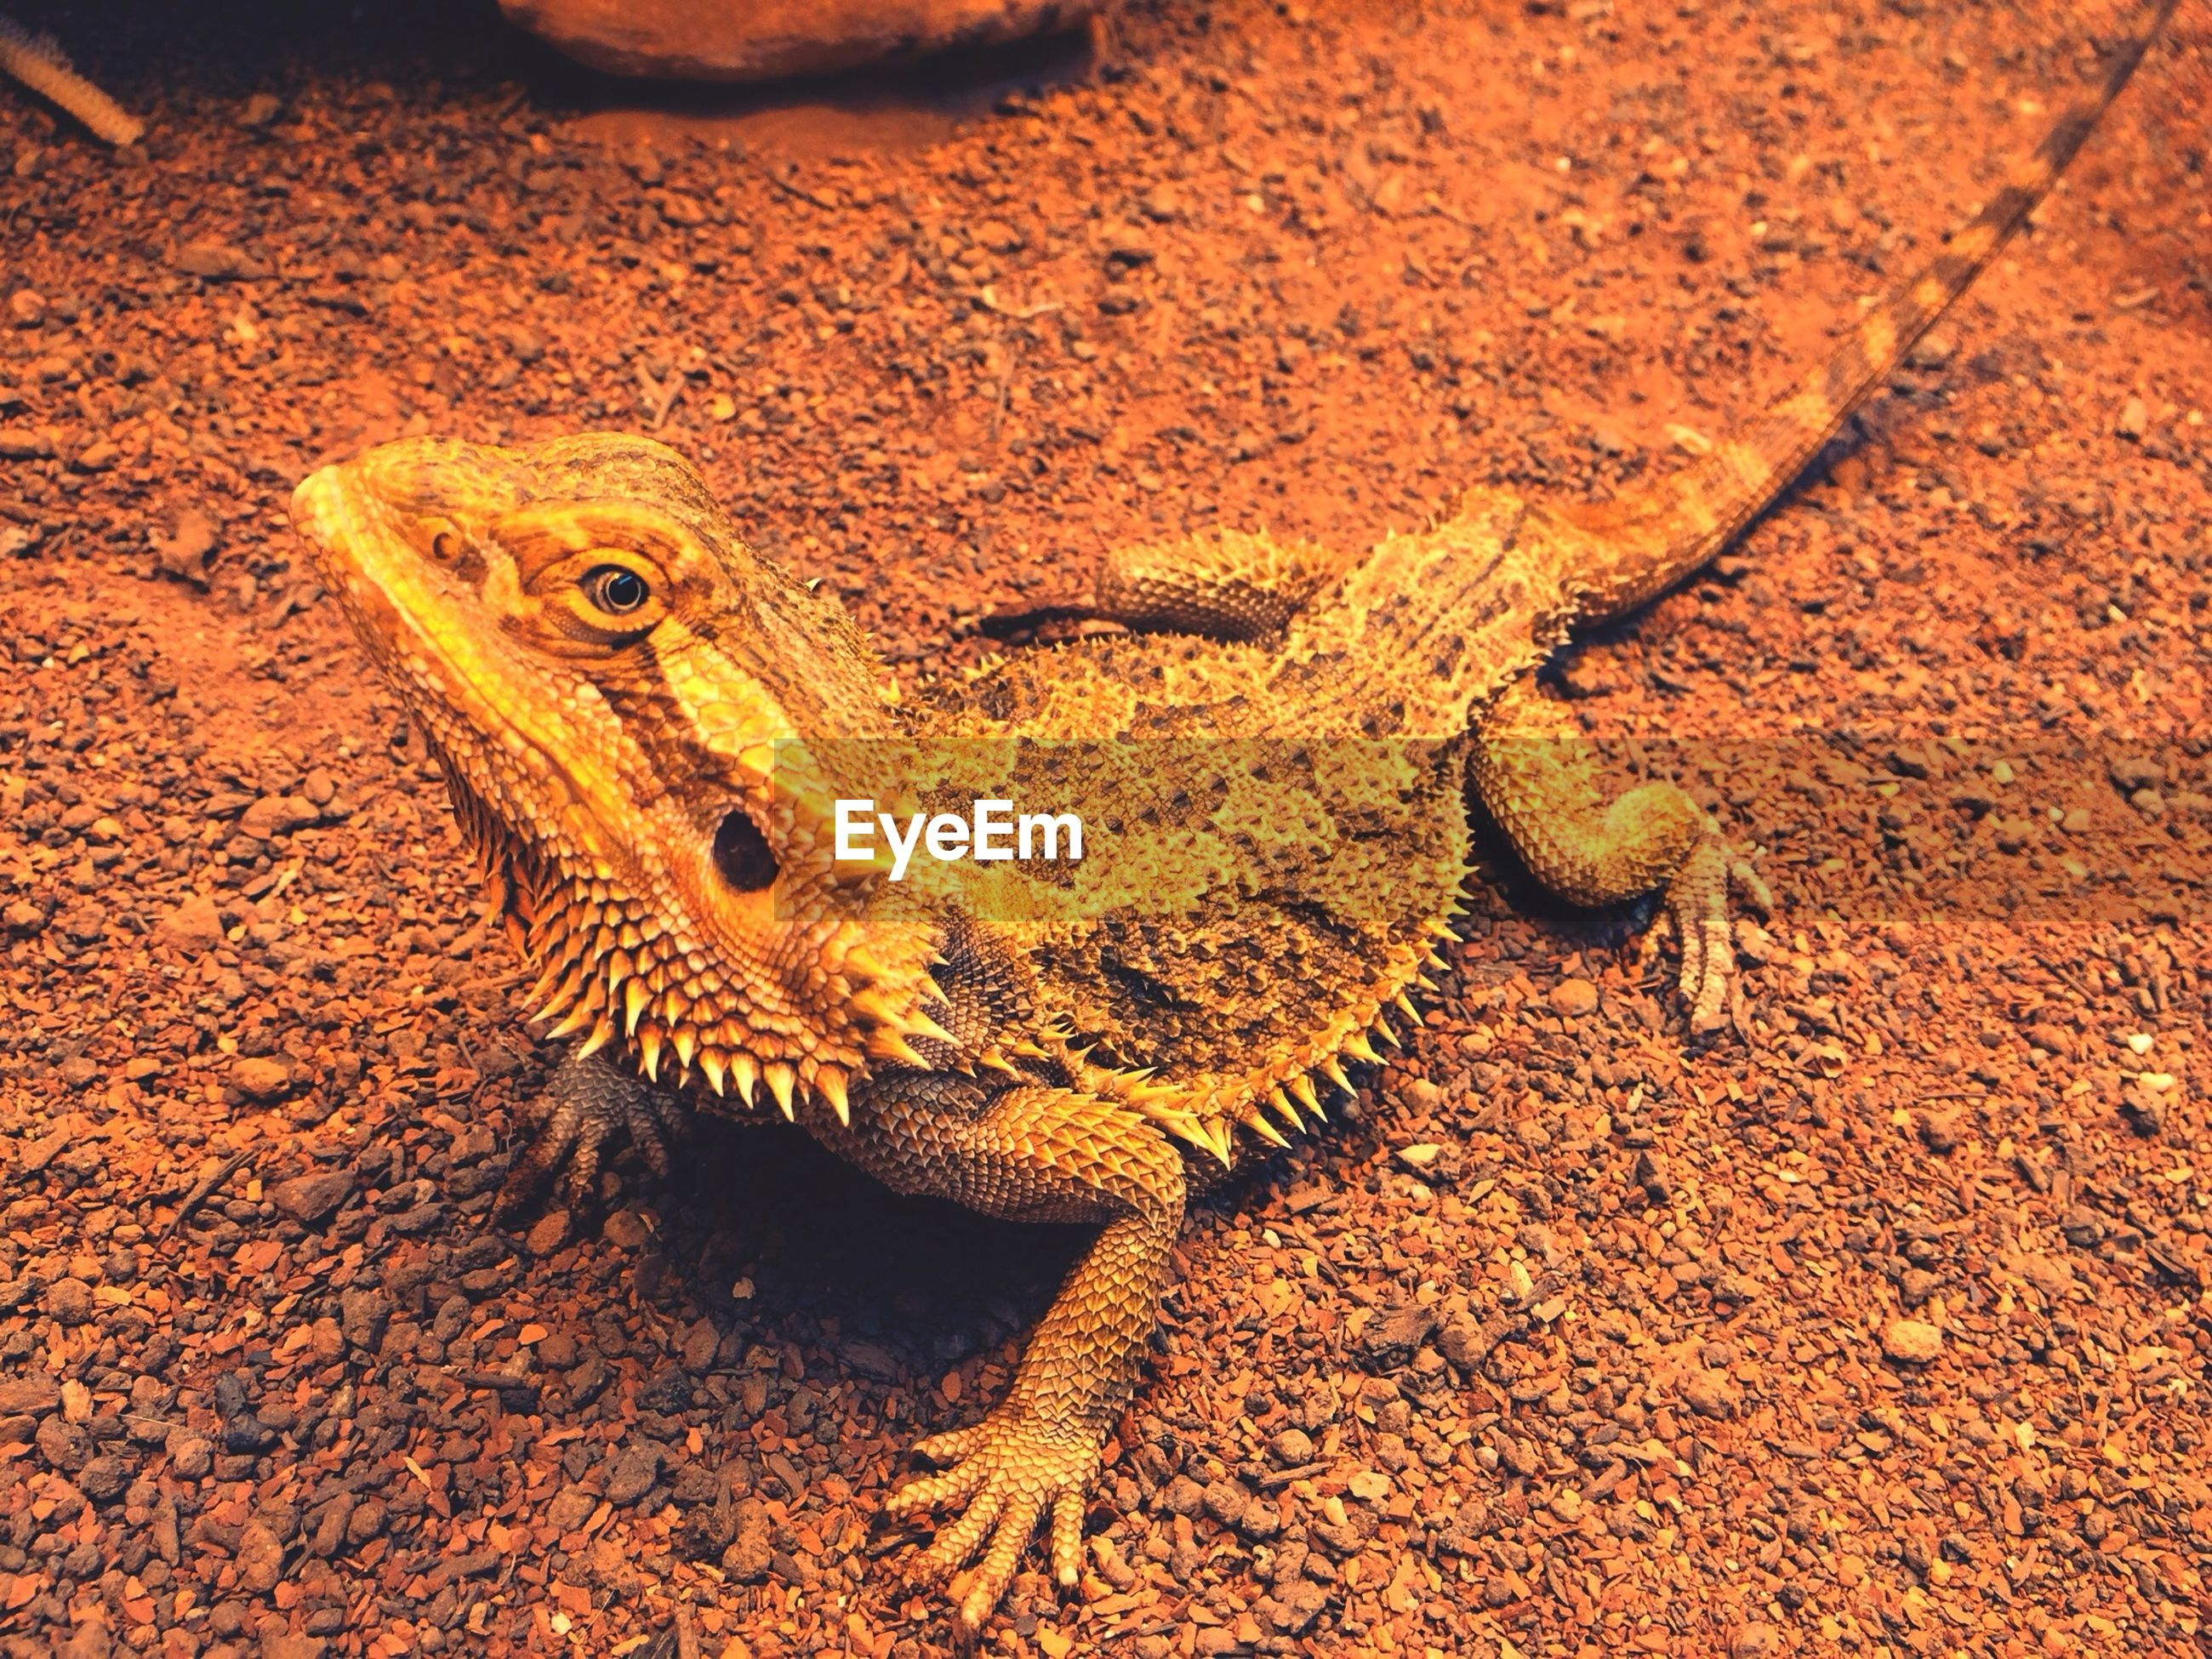 animal themes, animals in the wild, one animal, wildlife, reptile, lizard, close-up, nature, high angle view, outdoors, day, no people, natural pattern, sand, animal head, side view, sunlight, focus on foreground, field, beauty in nature